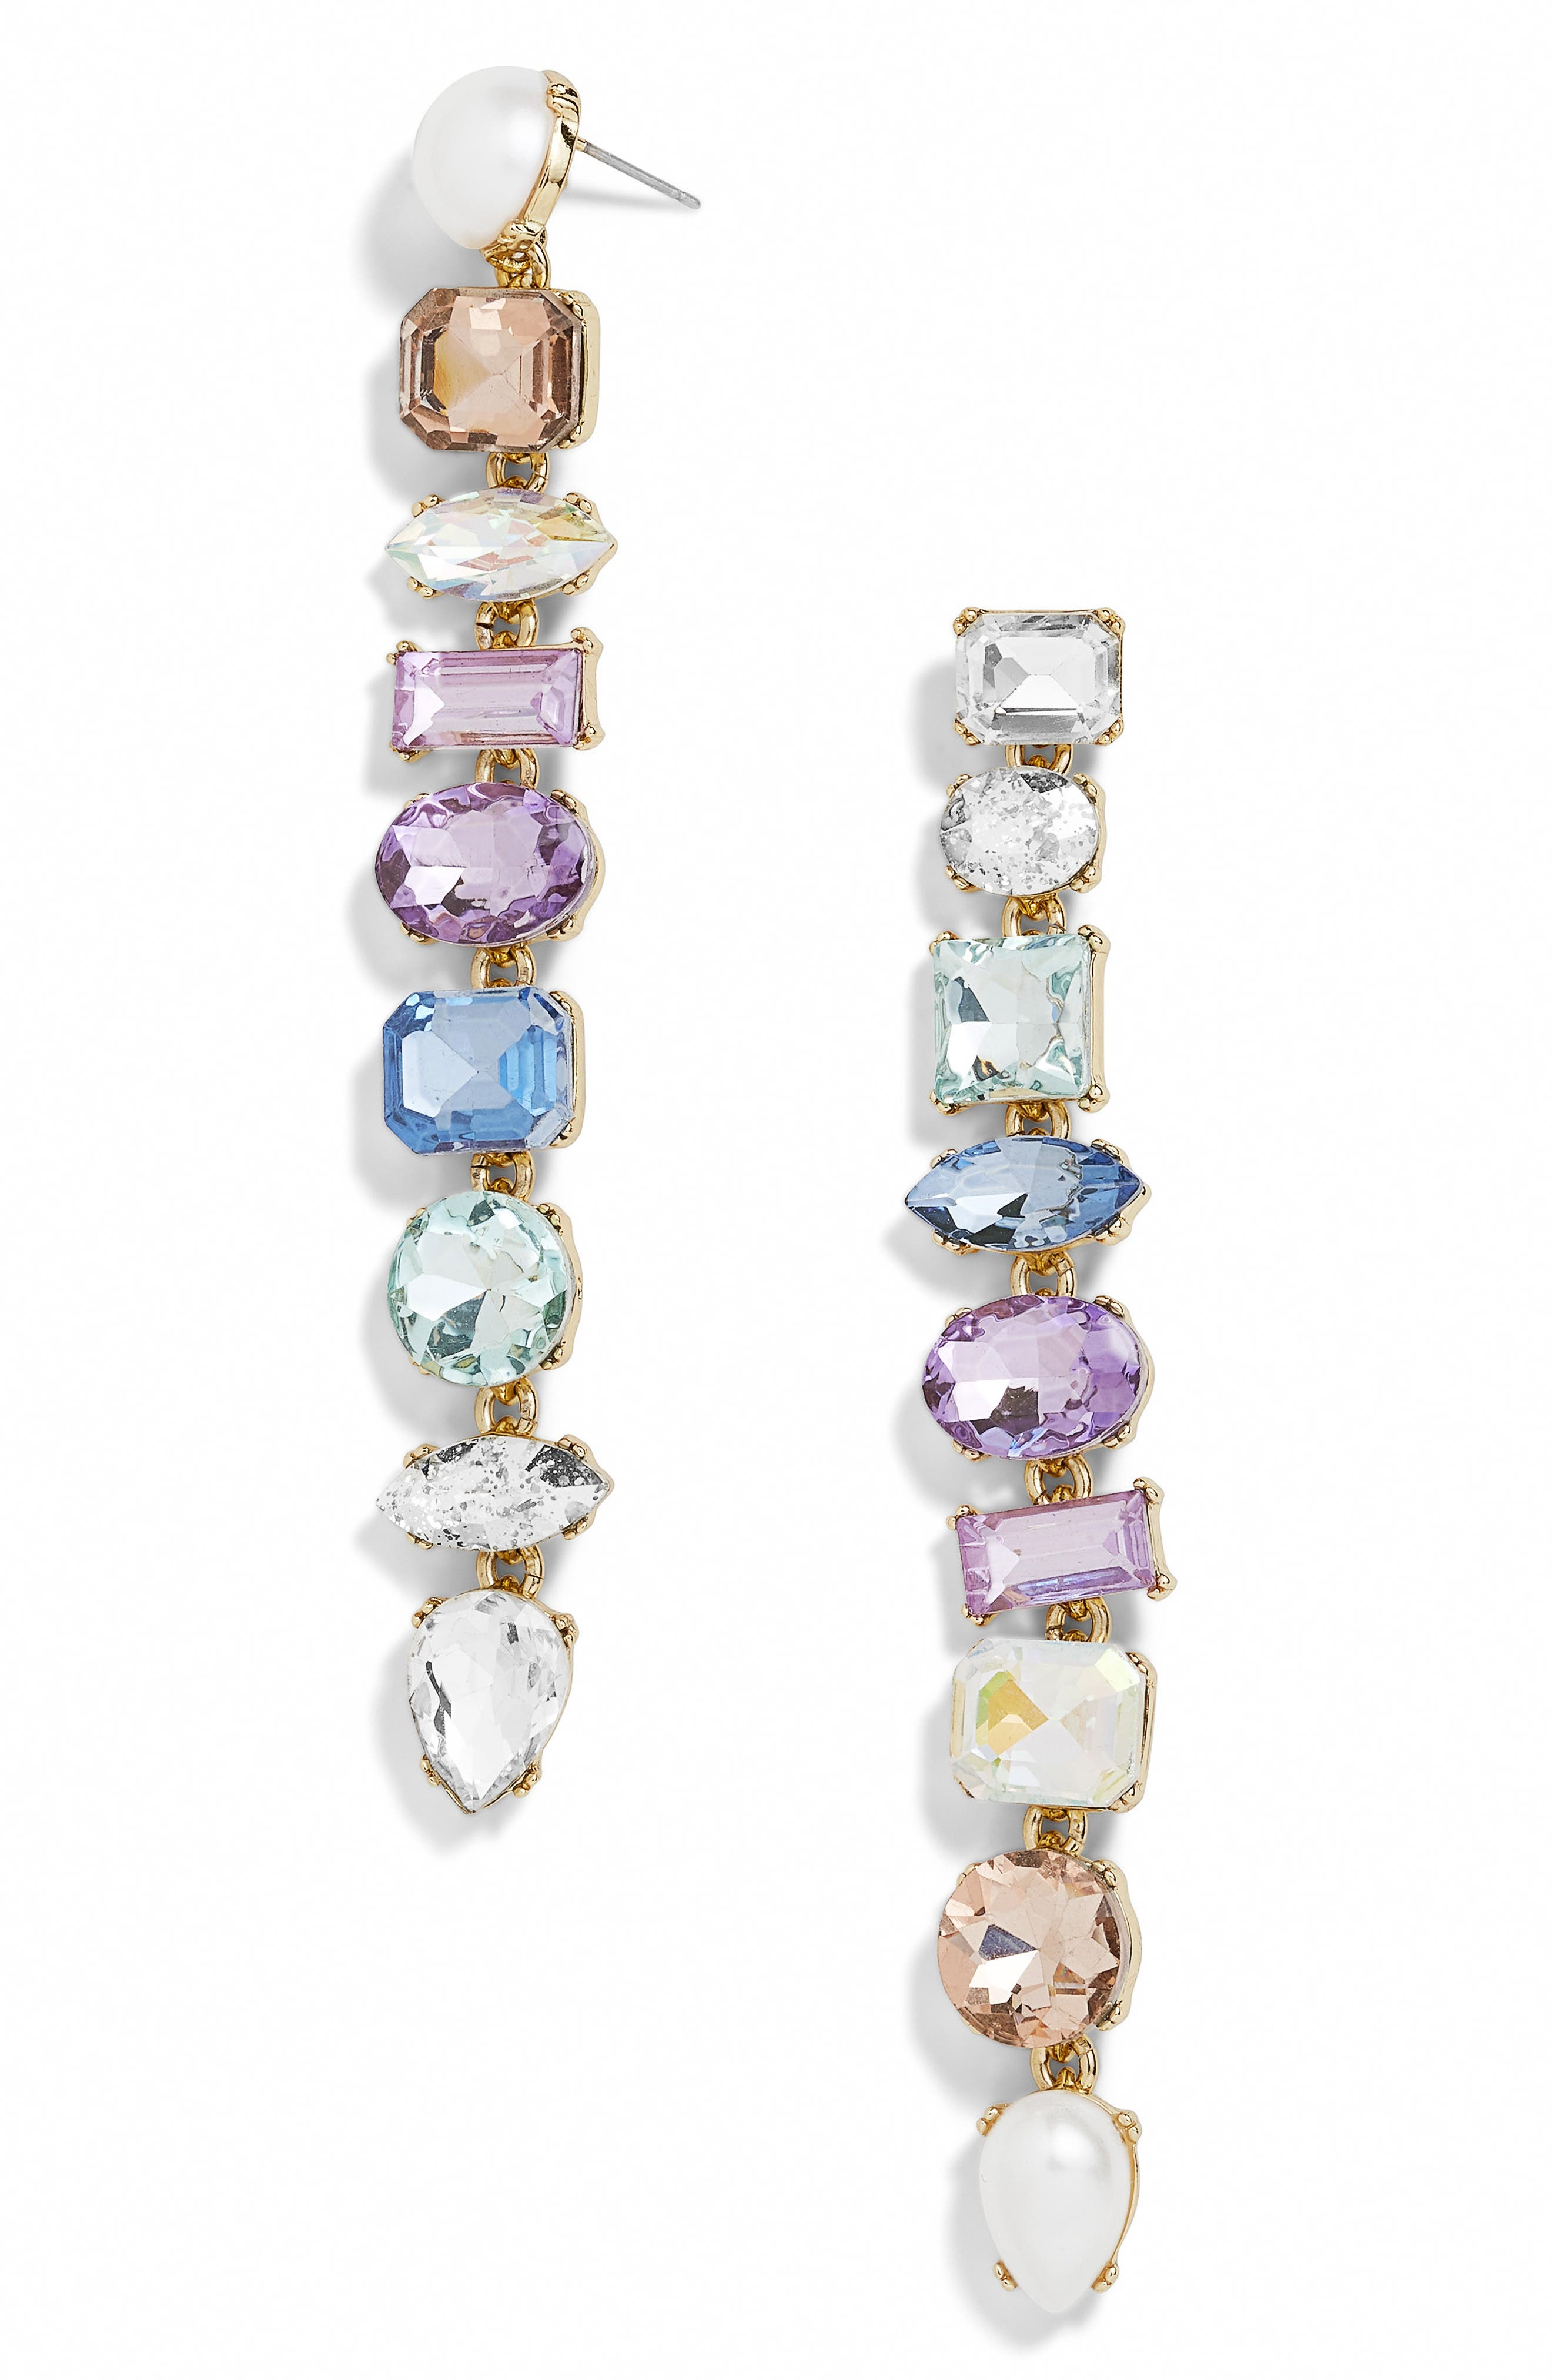 x Micaela Erlanger Girls Night Out Mismatched Drop Earrings,                         Main,                         color, PASTEL MULTI/ GOLD